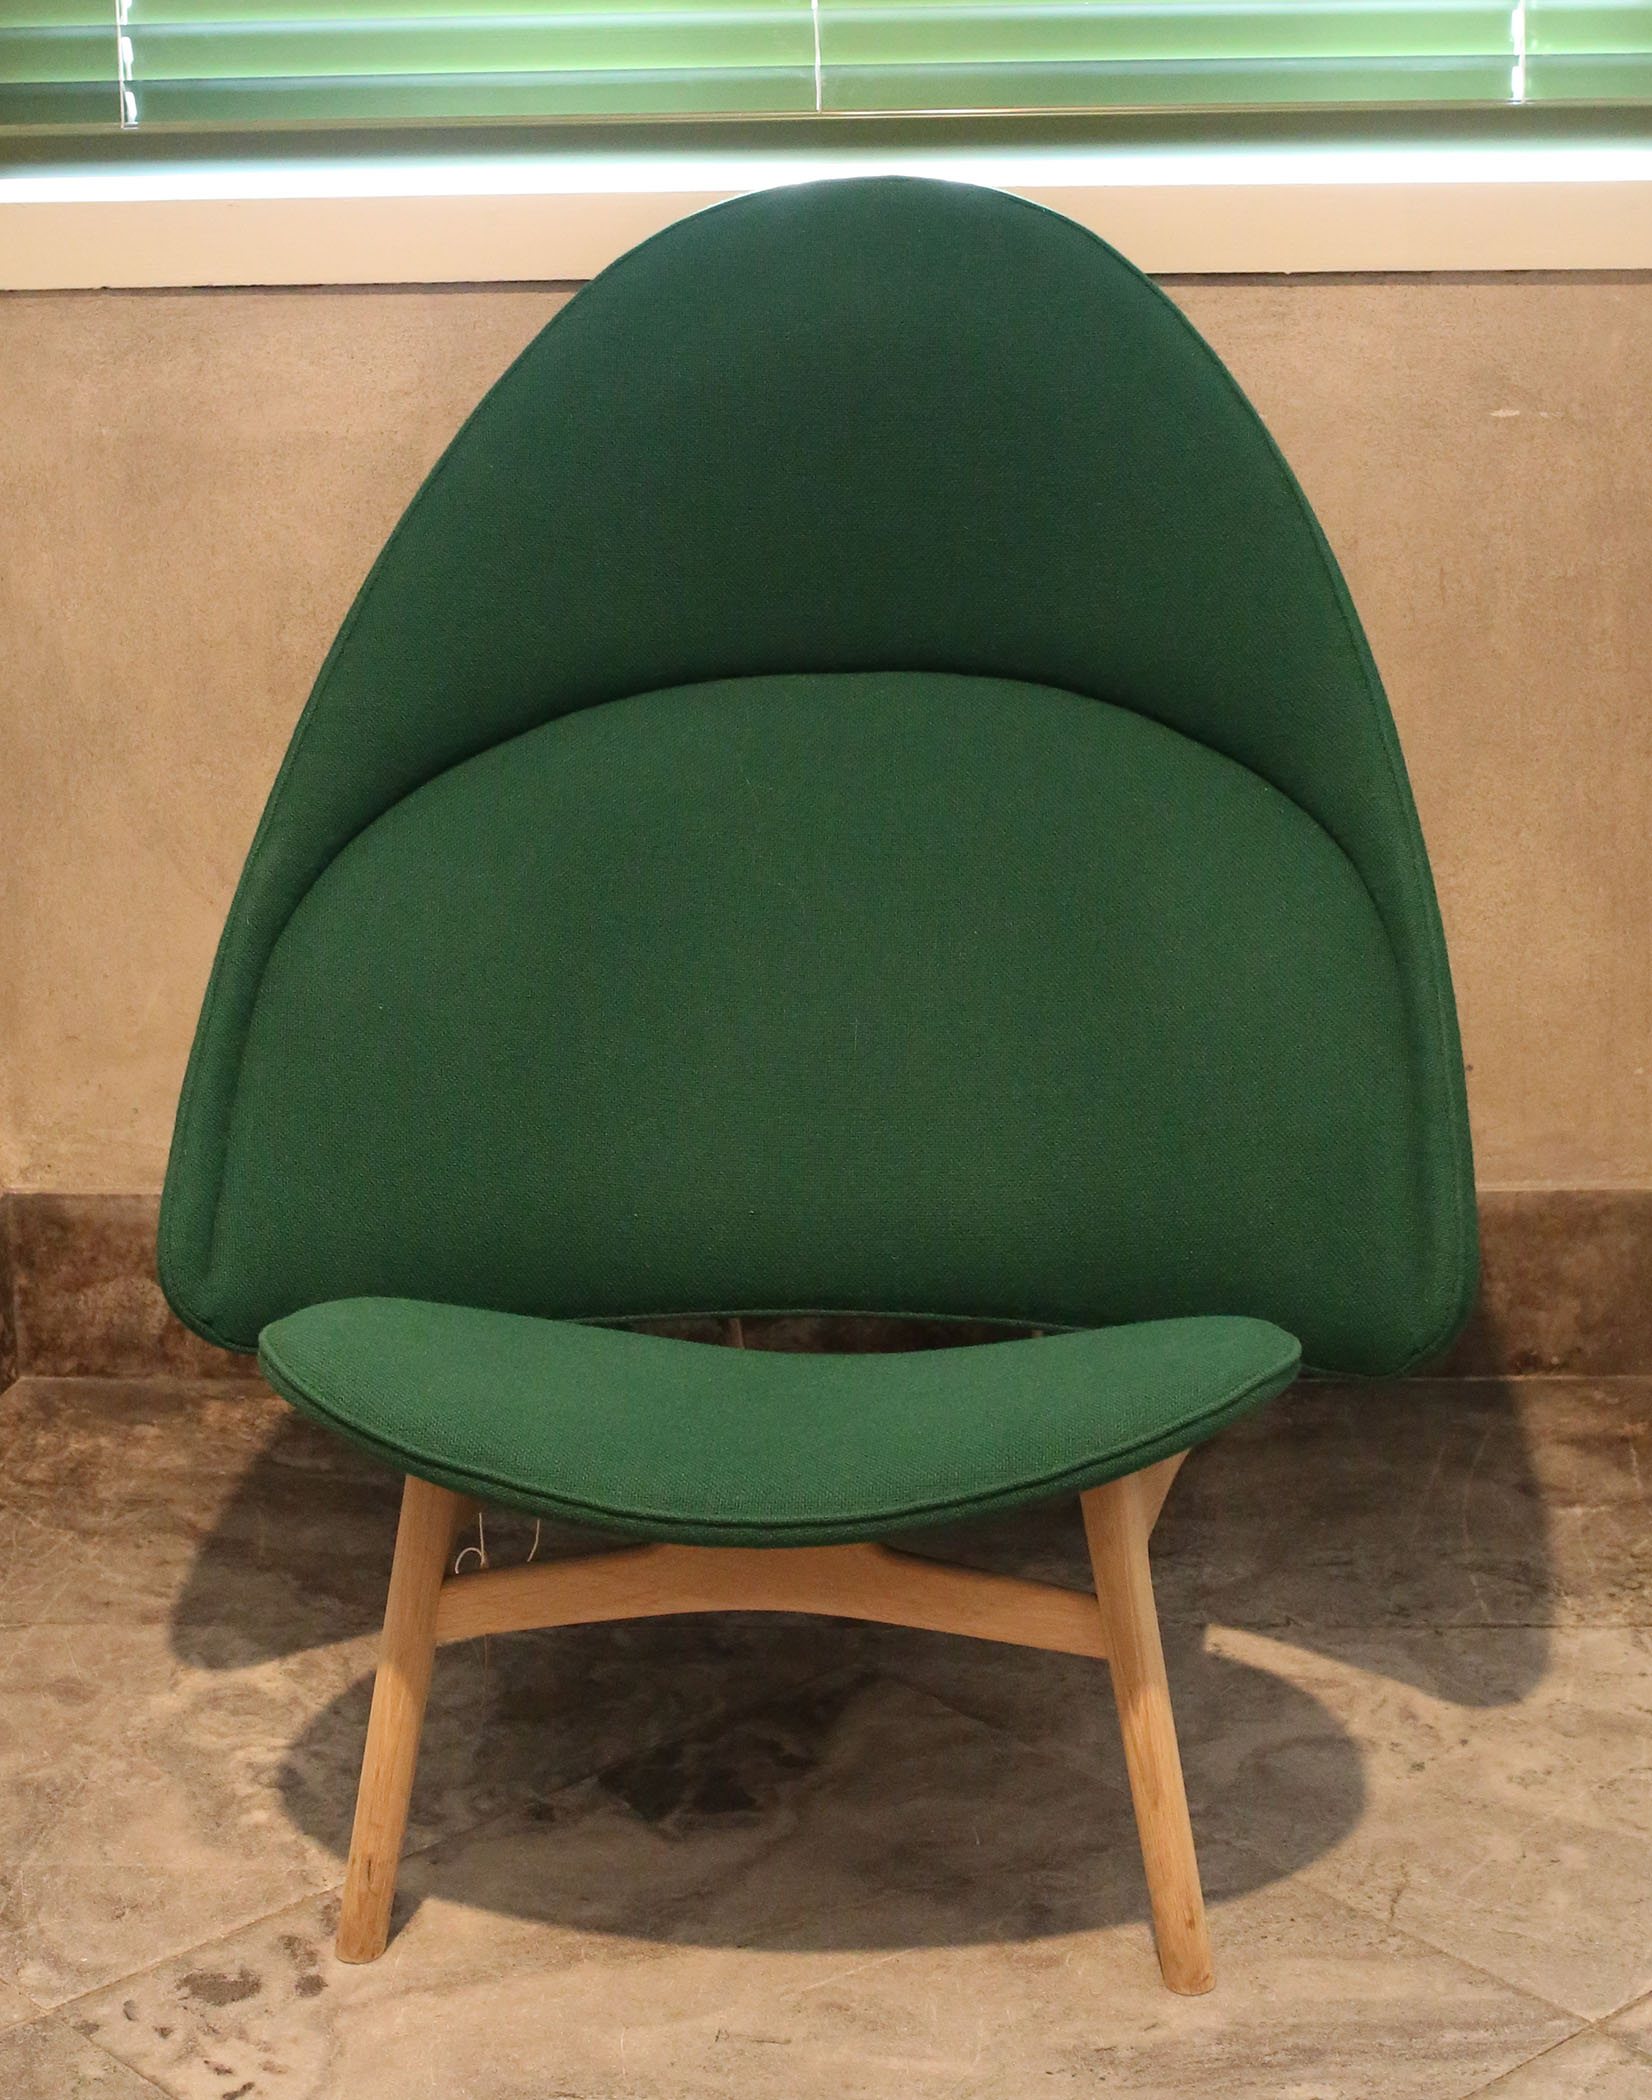 green Archives Chairblog